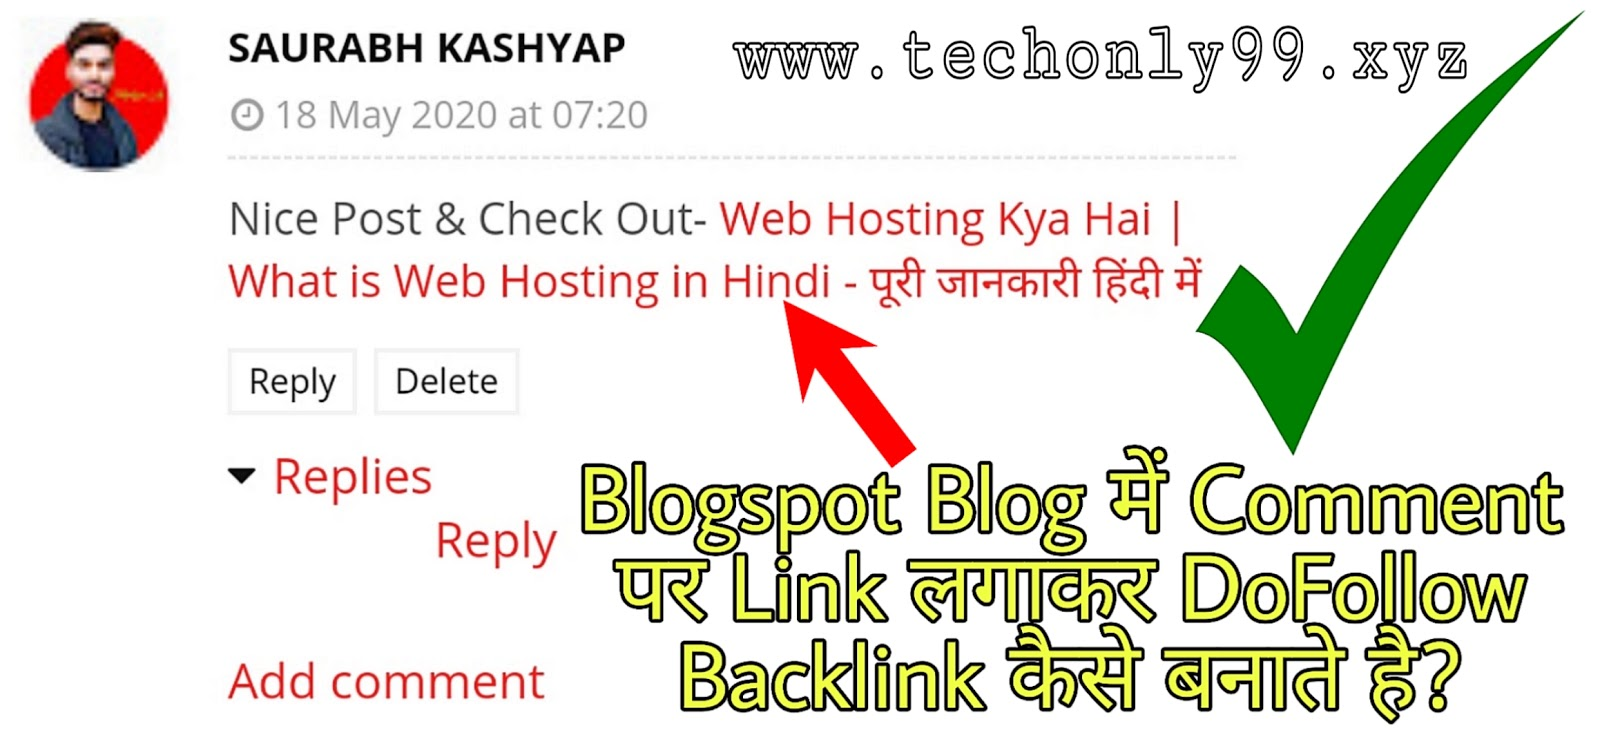 How to Add Hyperlink in Blogspot Blog Comment for Backlink in hindi